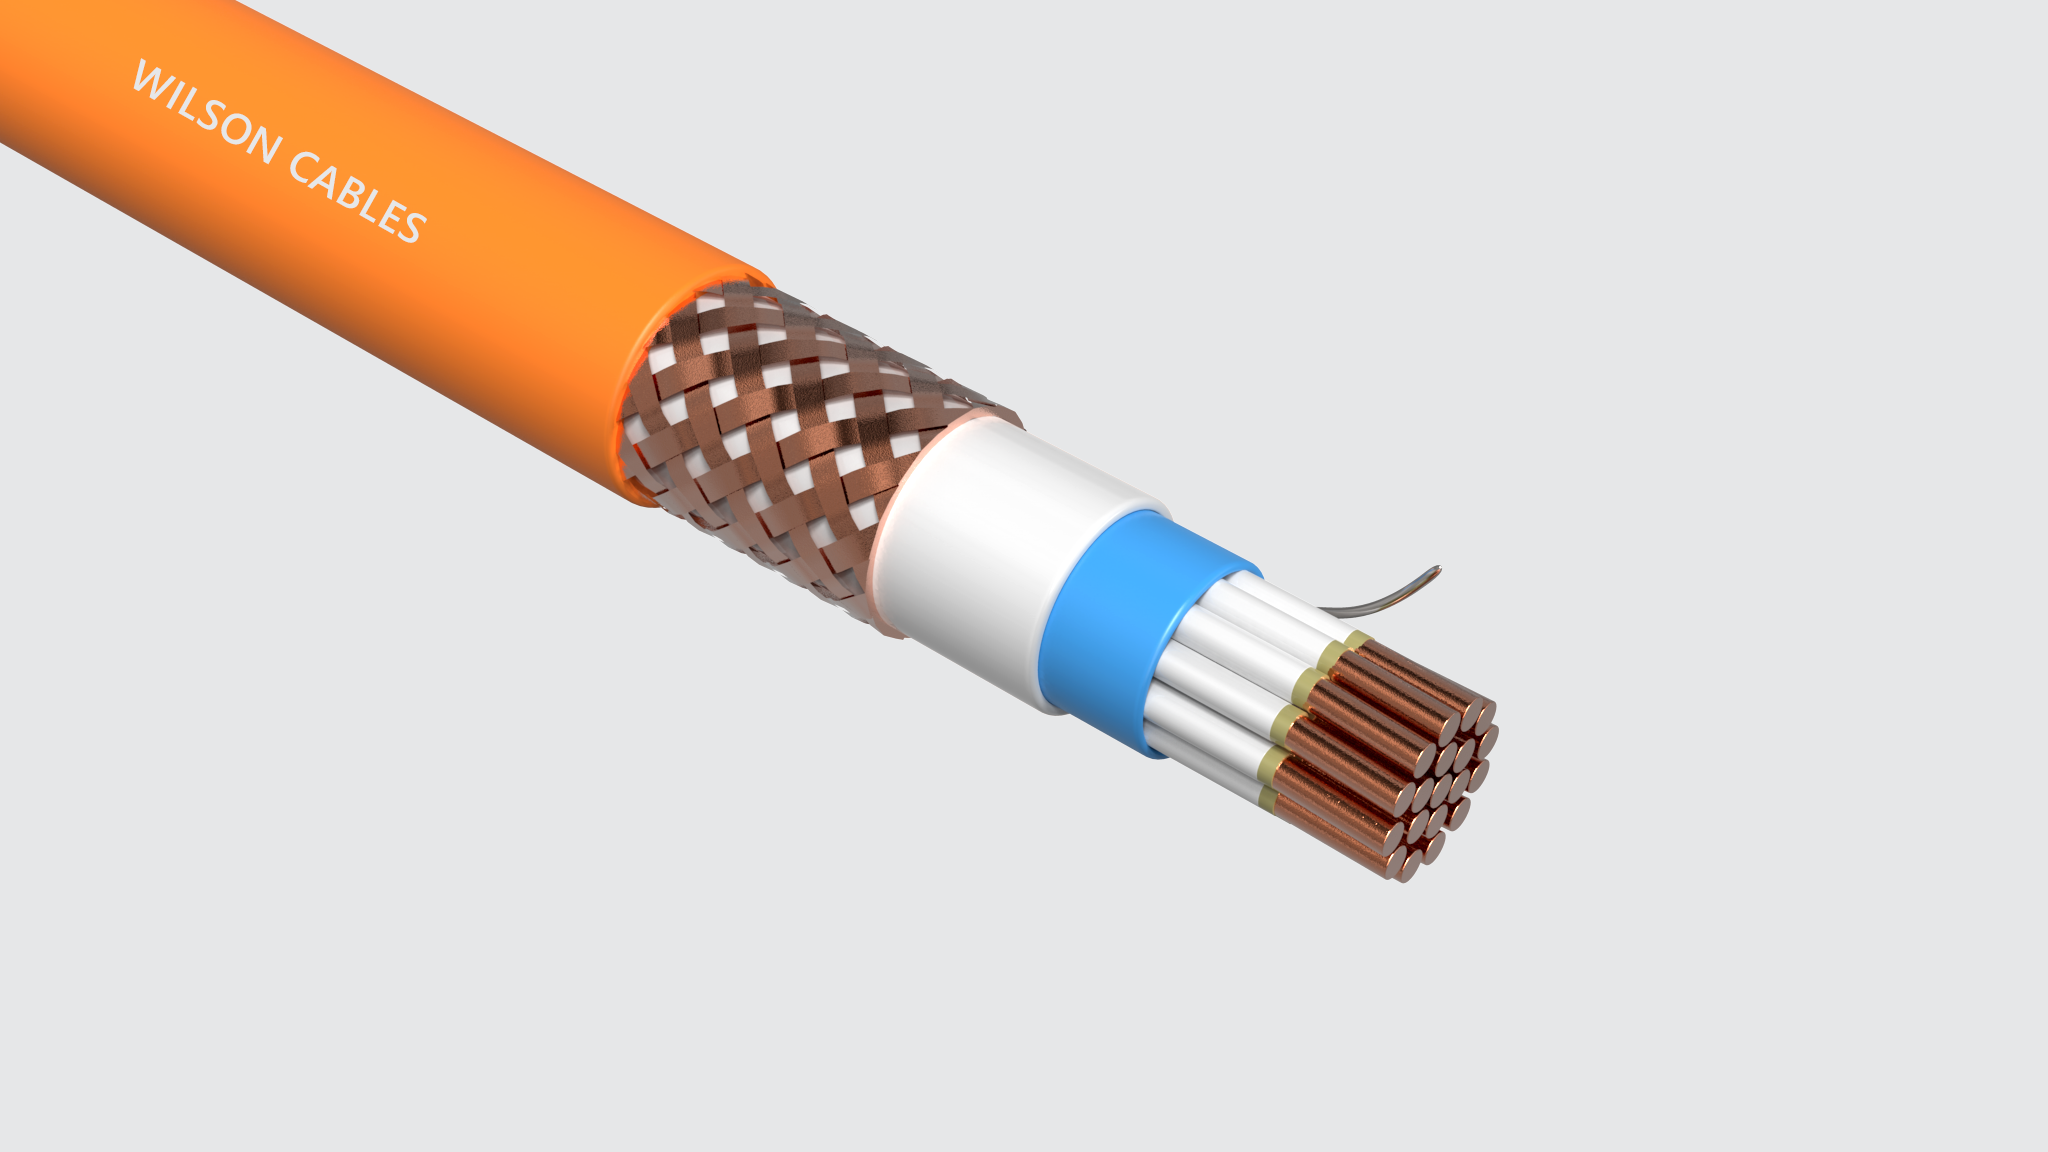 FRIM-200Q-M (SST) / FRIM-200C-M (SST) Fire Resistant Shipboard Braided Instrumentation Cables